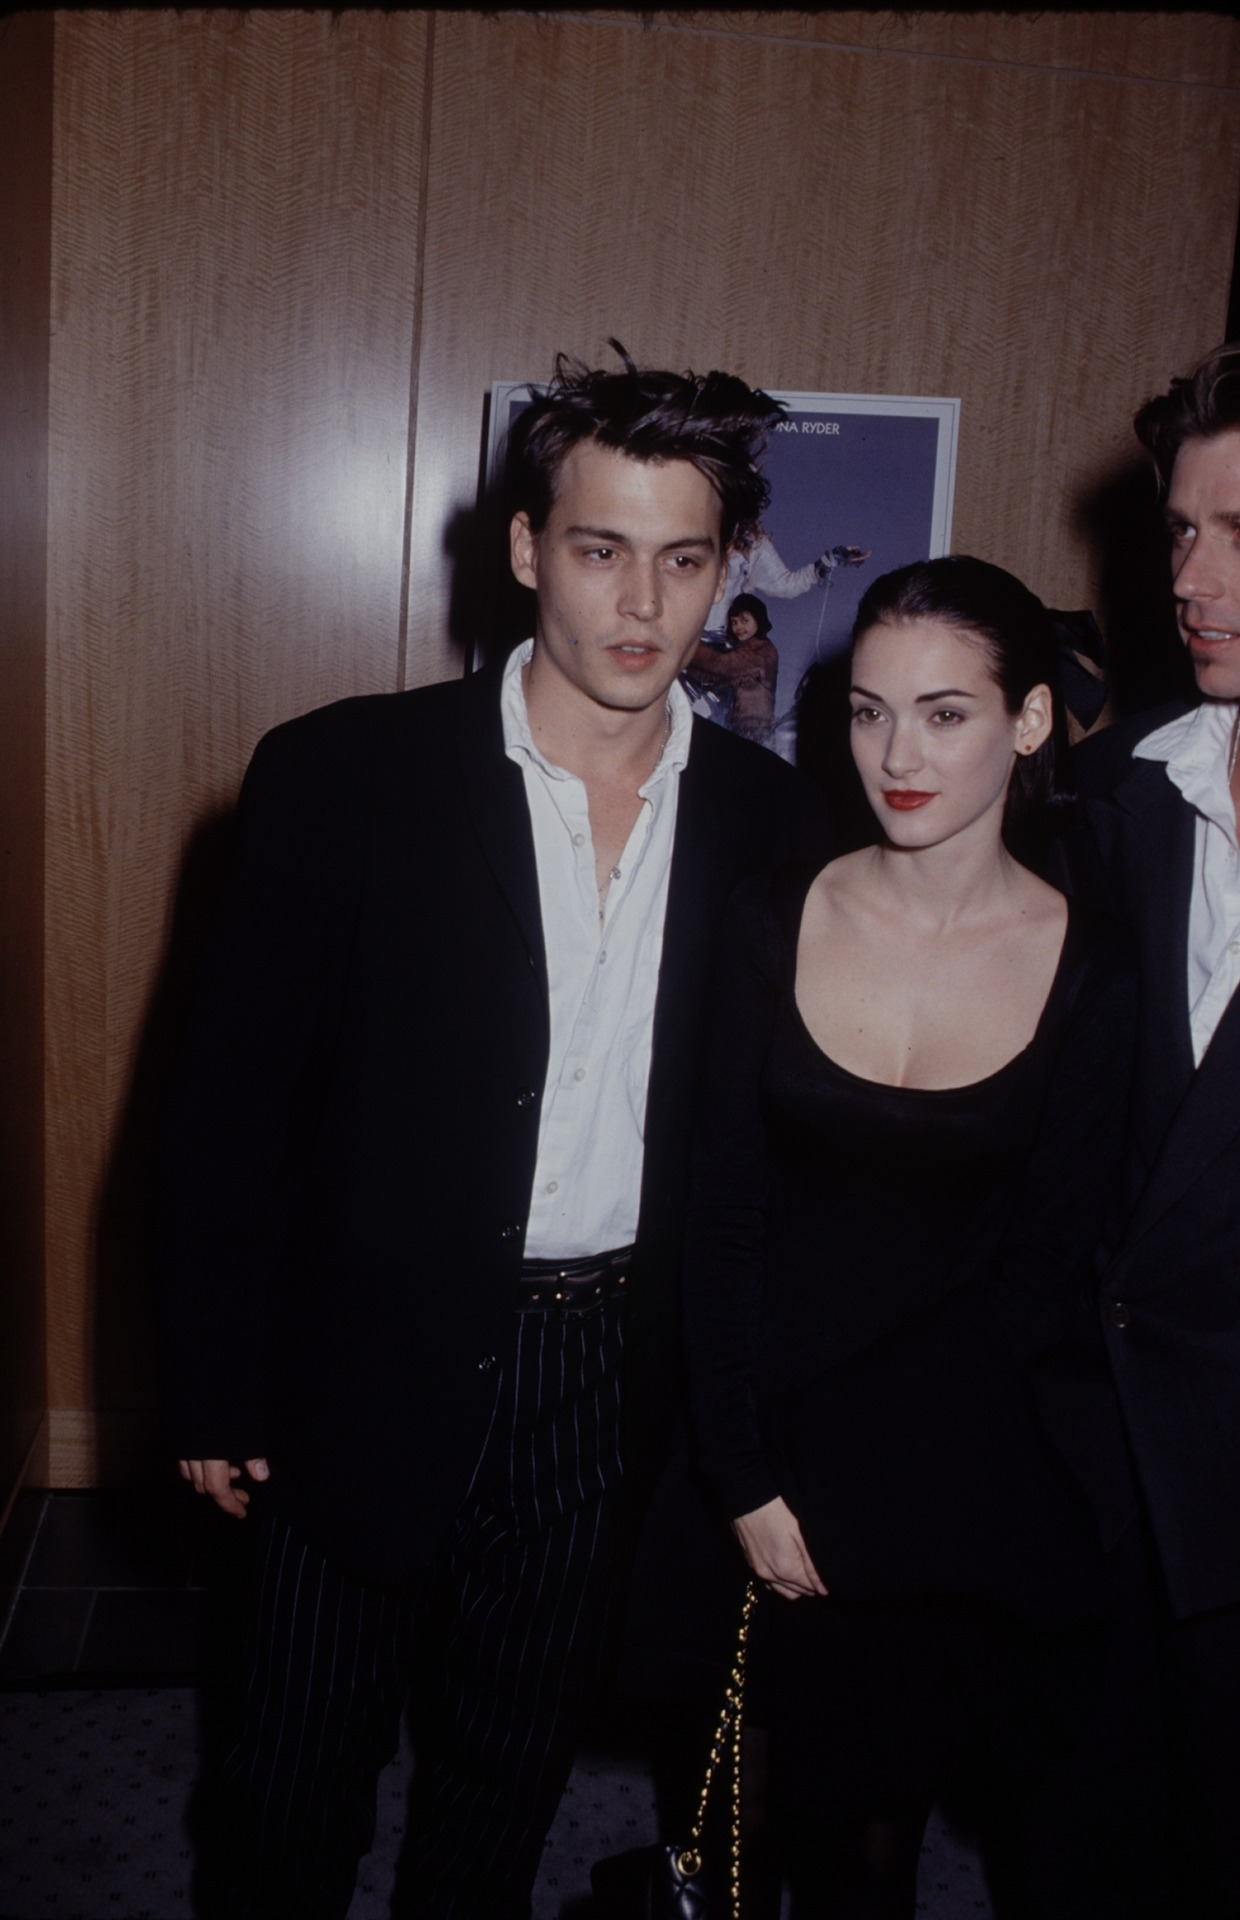 Johnny Depp and Winona Ryder at the Mermaids premiere in 1989